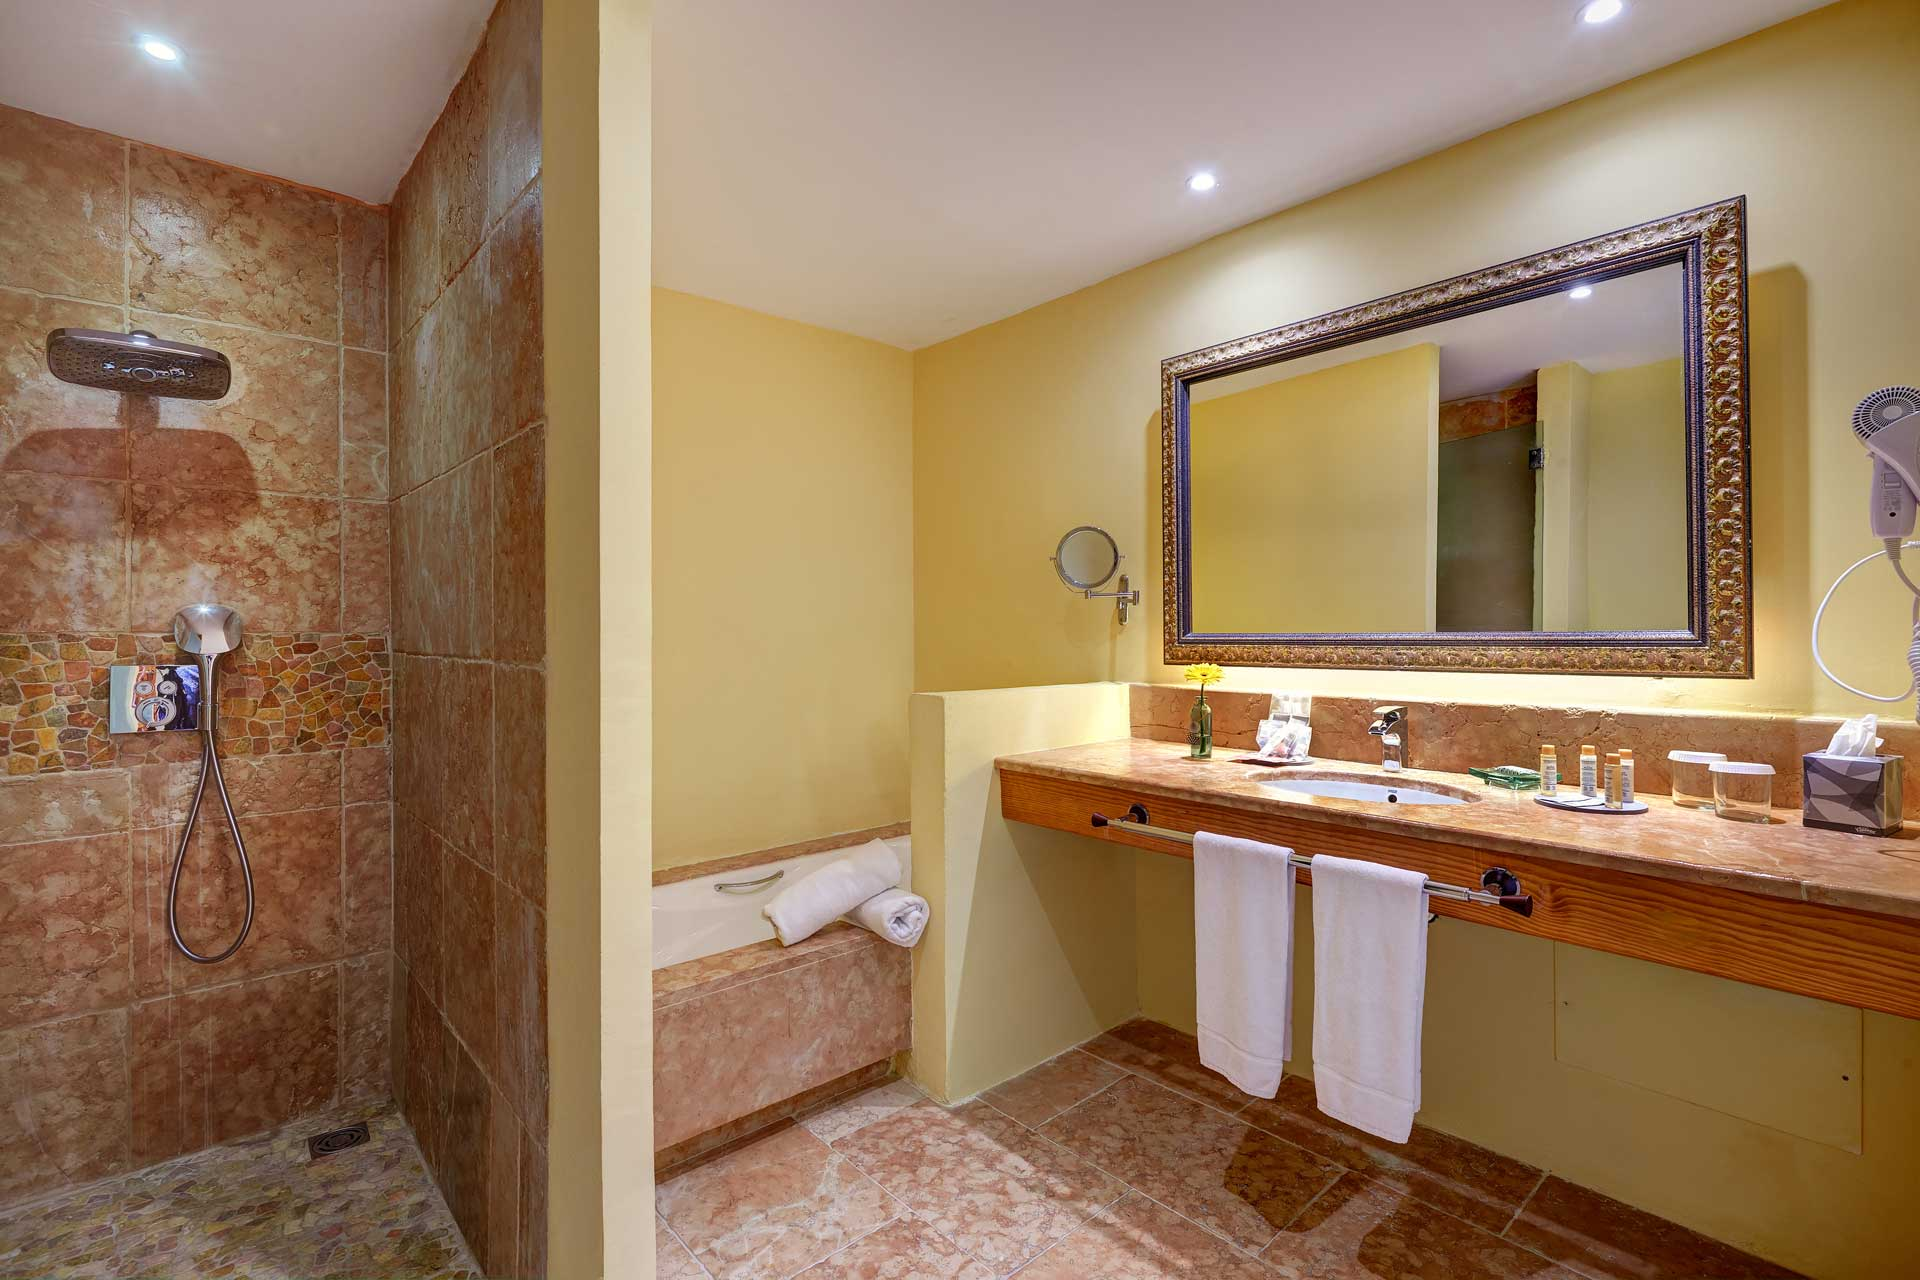 Finca-Hotel Sentido Pula Suites - Superior Suite de Luxe with en suite bathroom